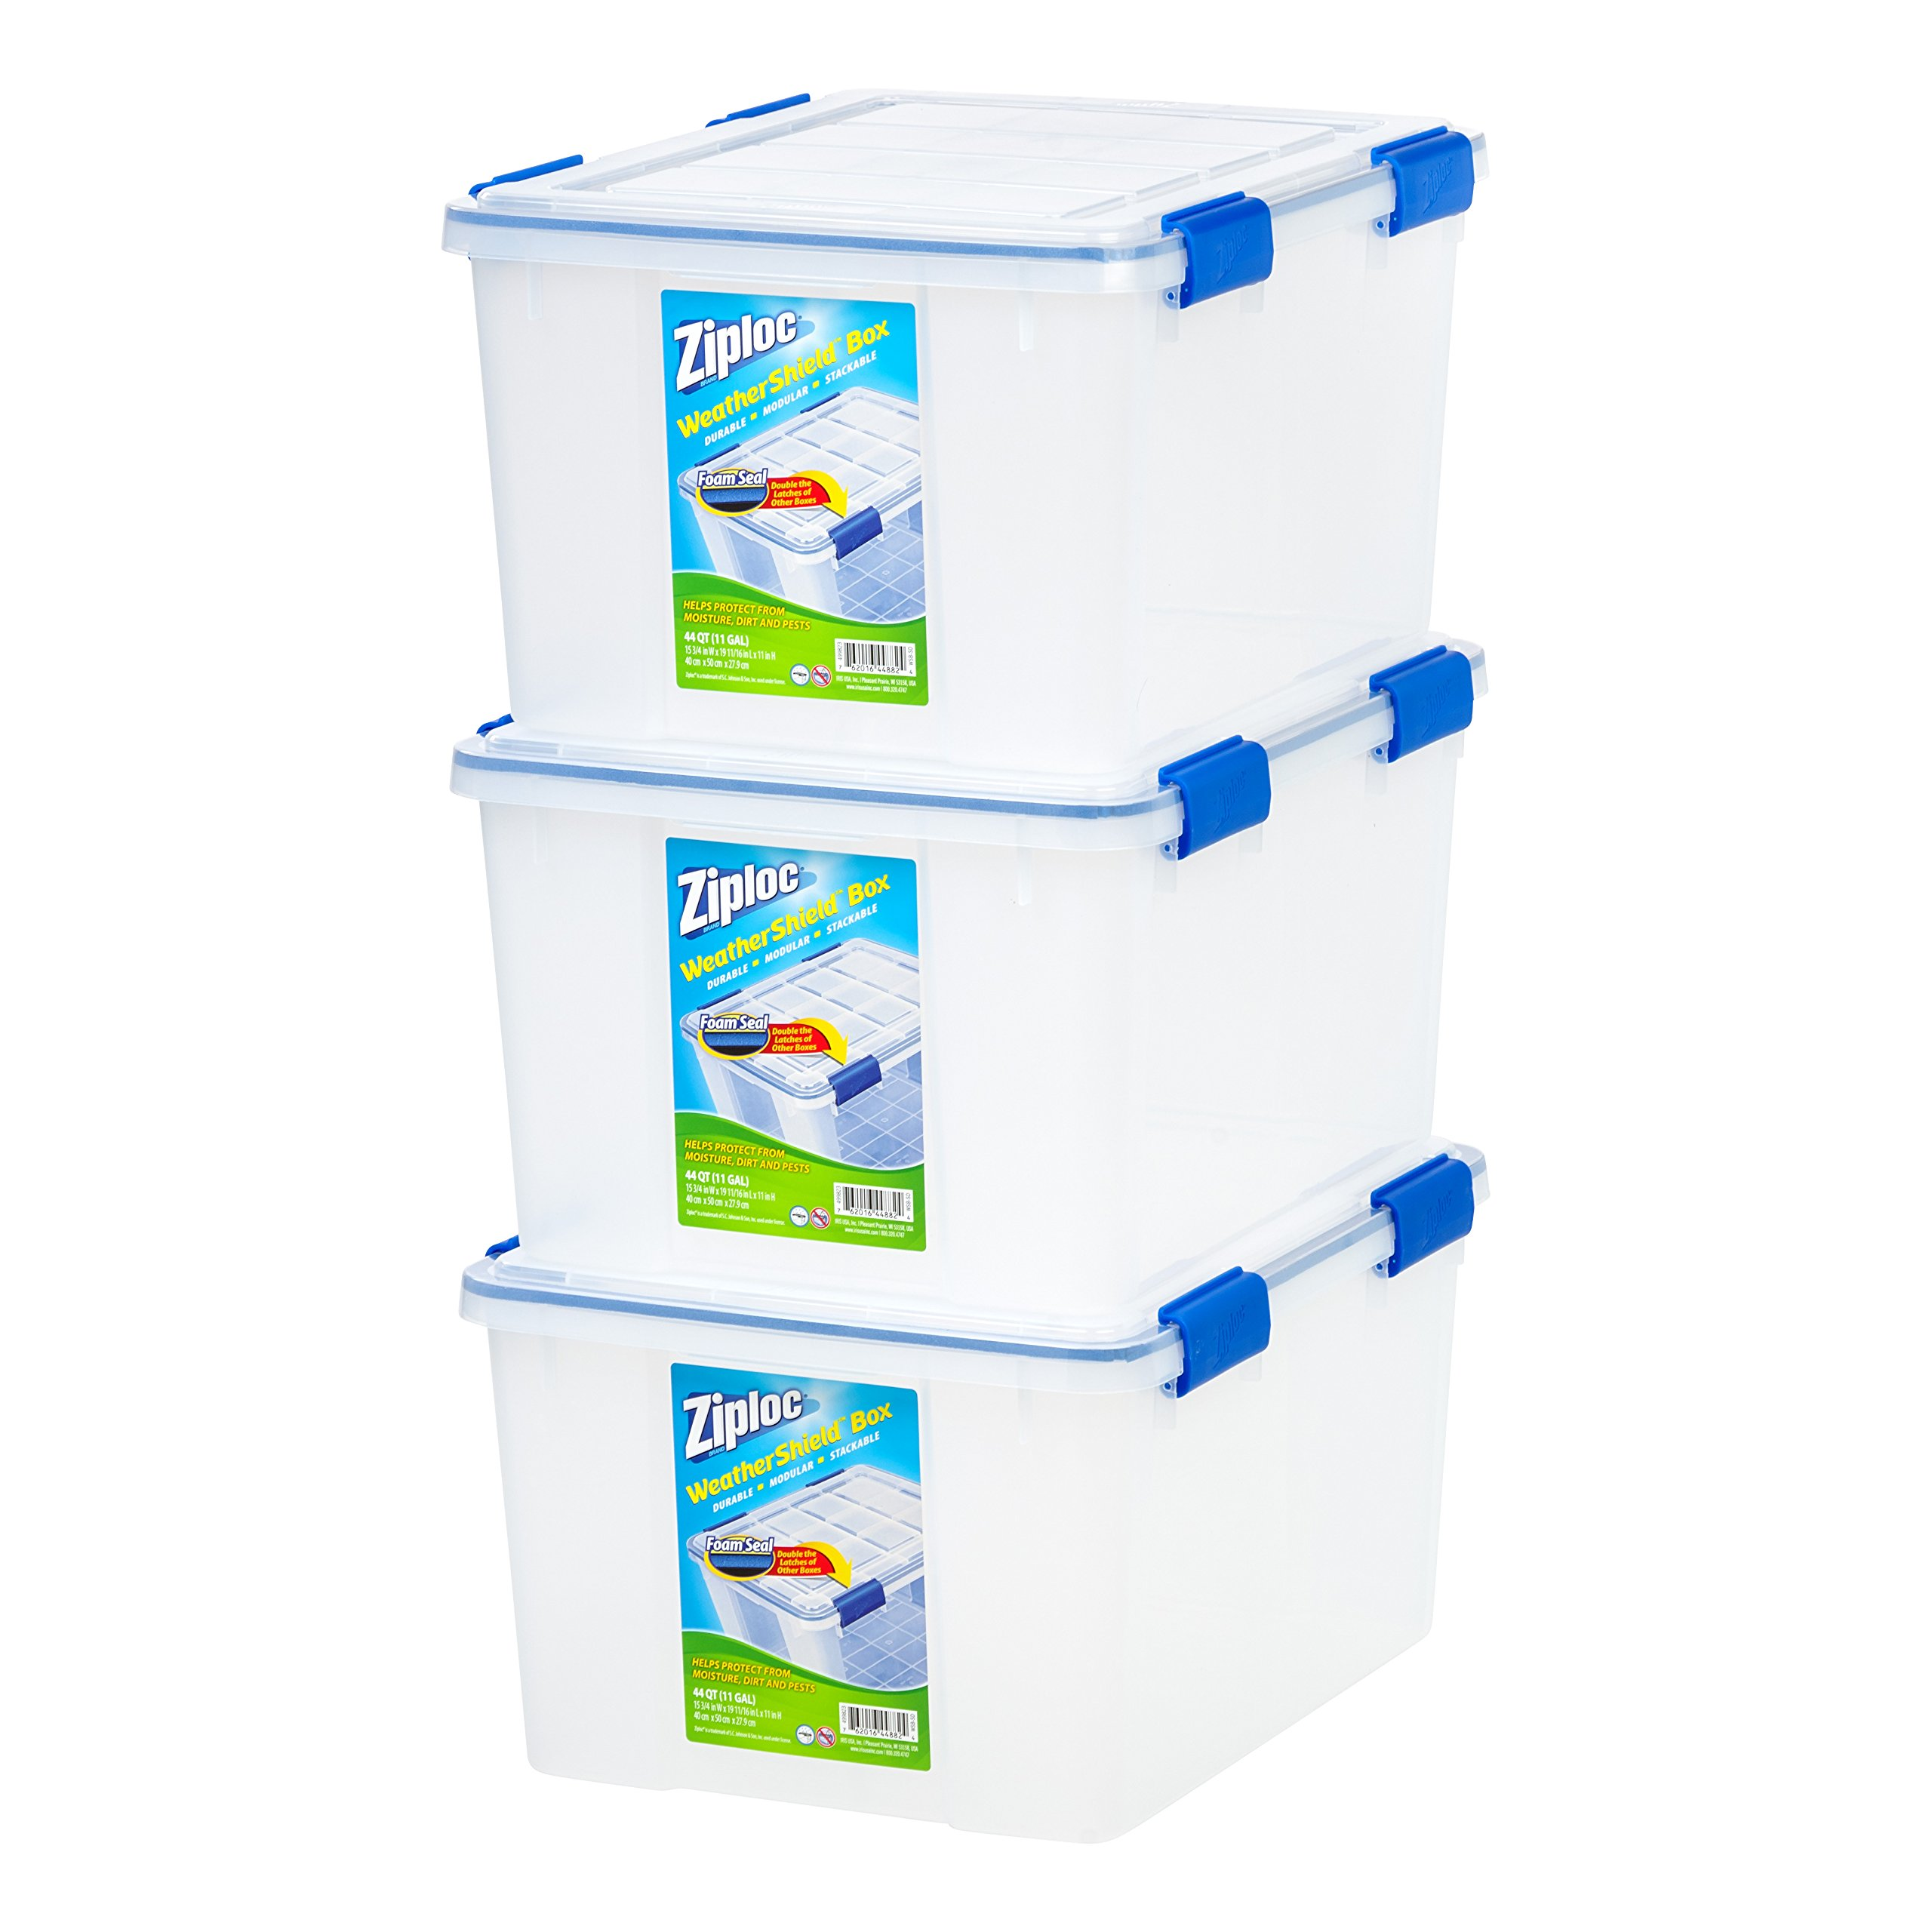 IRIS USA, Inc. WSB-SD WeatherShield Storage Box, 44 Quart, Clear, 3 Pack by IRIS USA, Inc.